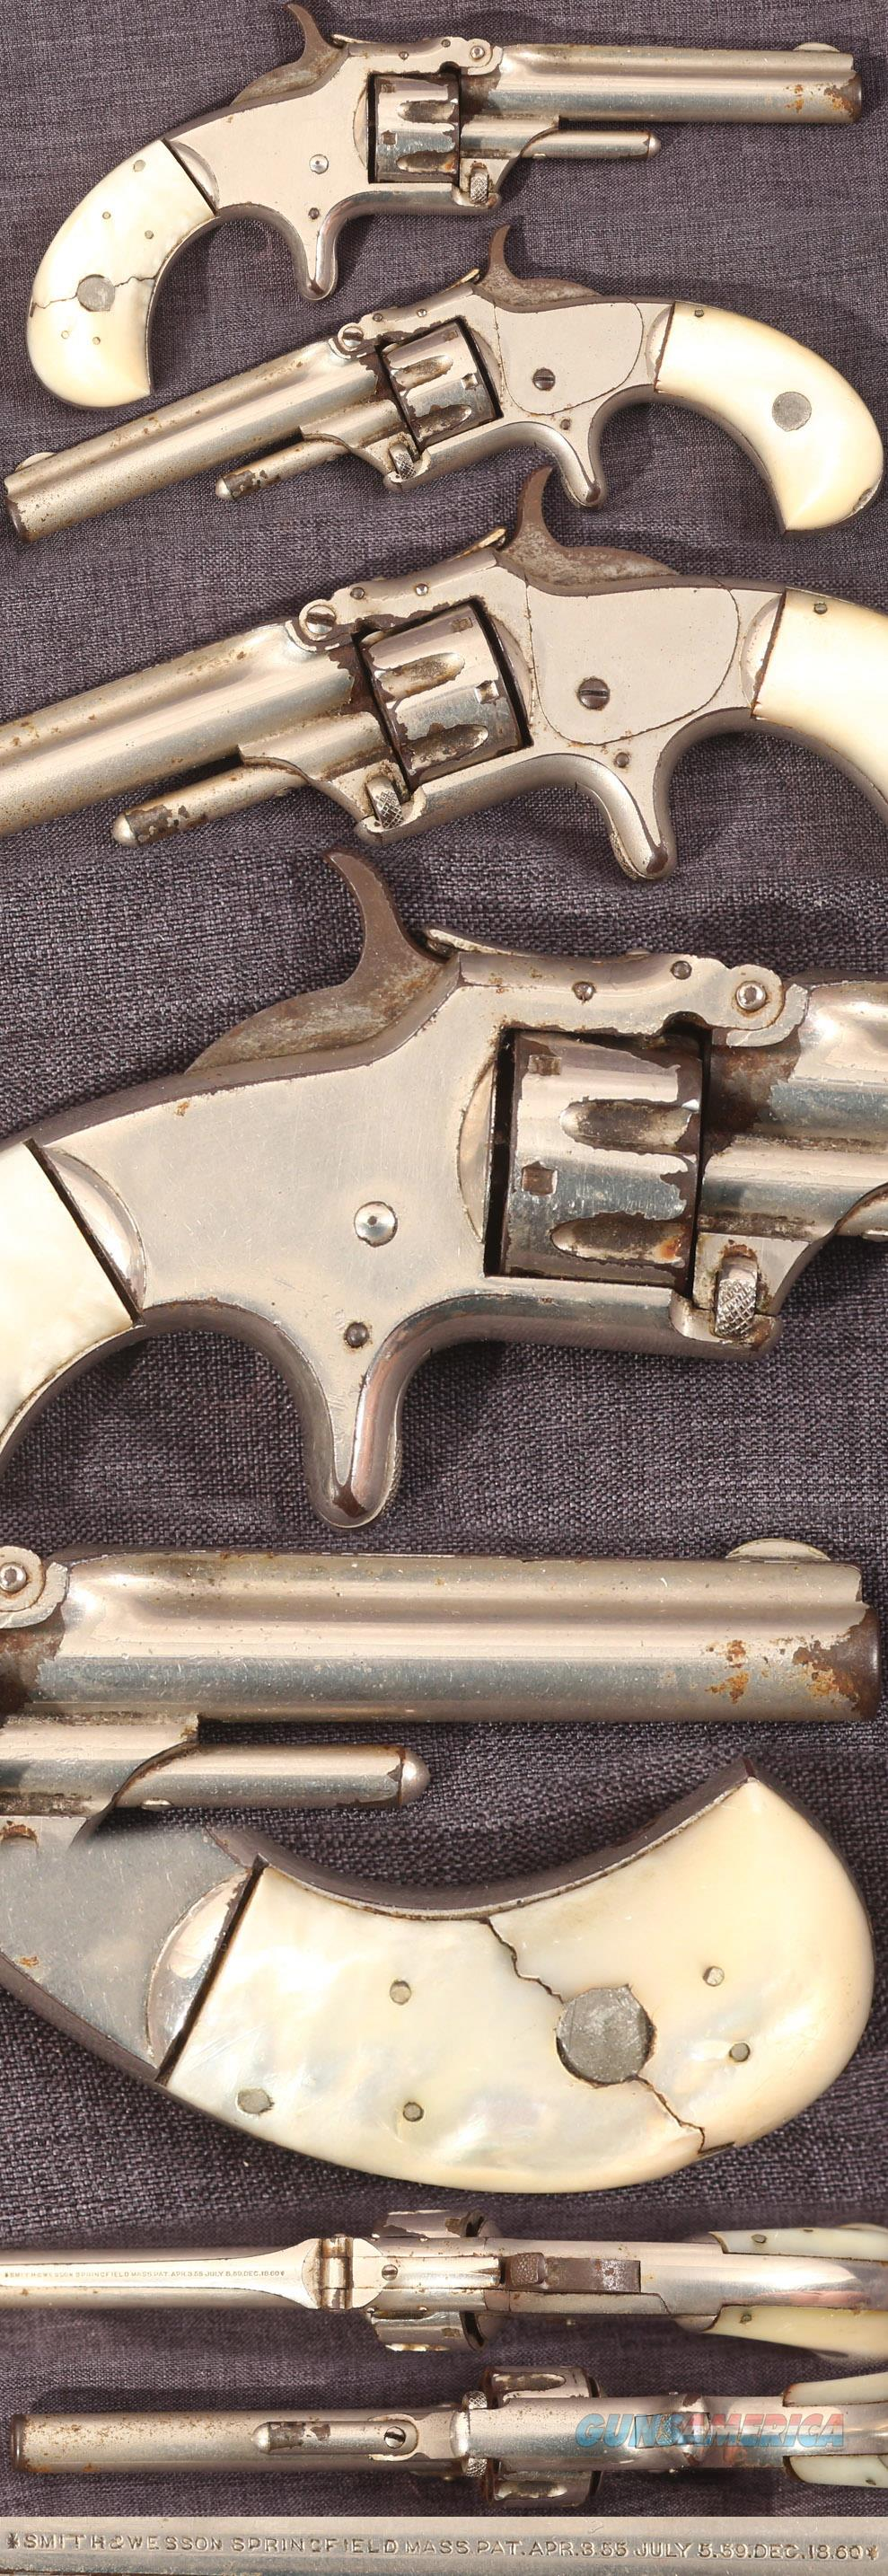 Smith & Wesson first model, third issue 22 revolver  Guns > Pistols > Smith & Wesson Revolvers > Pre-1899